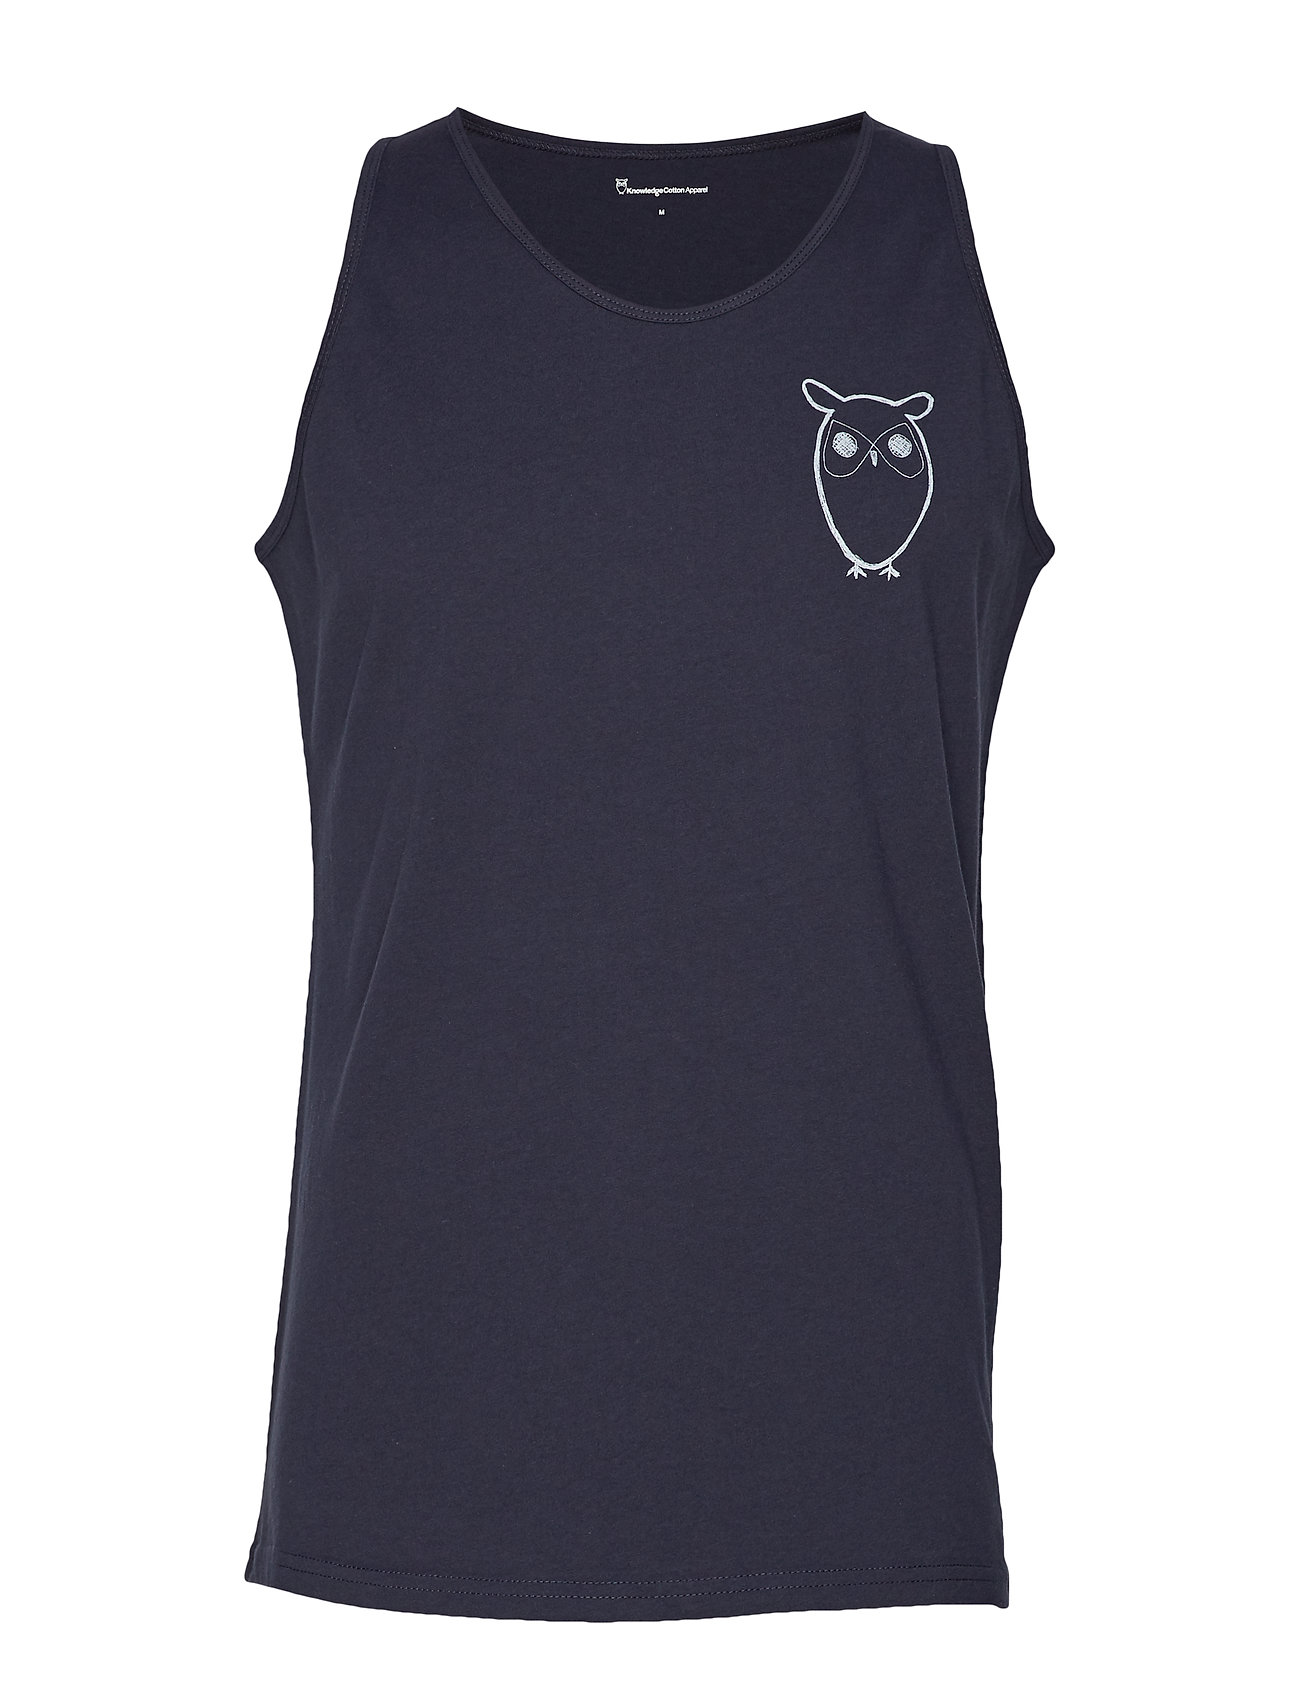 Cotton With Apparel Top Owl Chest LogoGotstotal Tank EclipseKnowledge zMSVUp